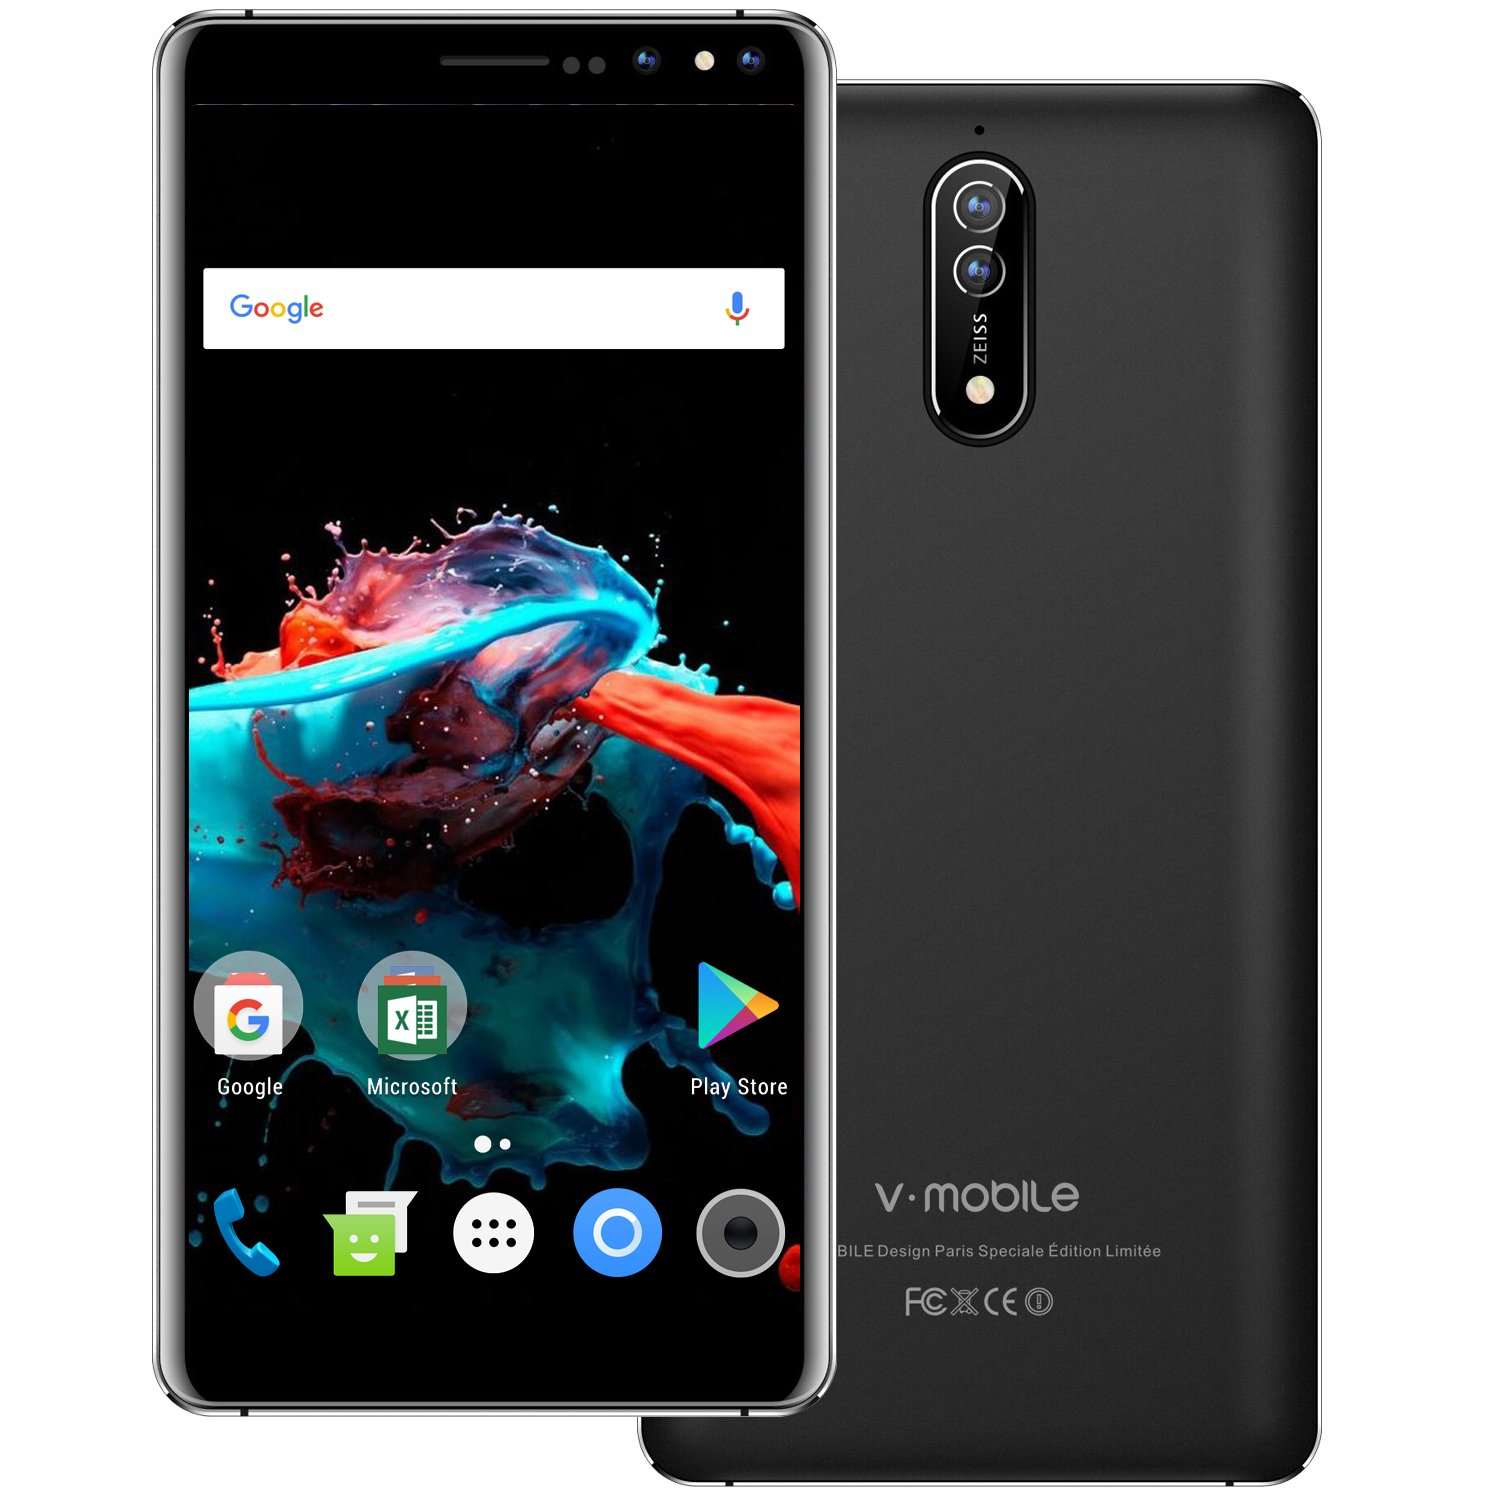 Unlocked Smartphone 2018,9 Pcs V Mobile N8-N 5.5 inches 8.0MP Dual Rear Camera 16GB ROM Android 7.0 2800mAh Battery 3G Dual Sim Quad Core 18: 9 Screen Simple Mobile Phone at&T/T-Mobile